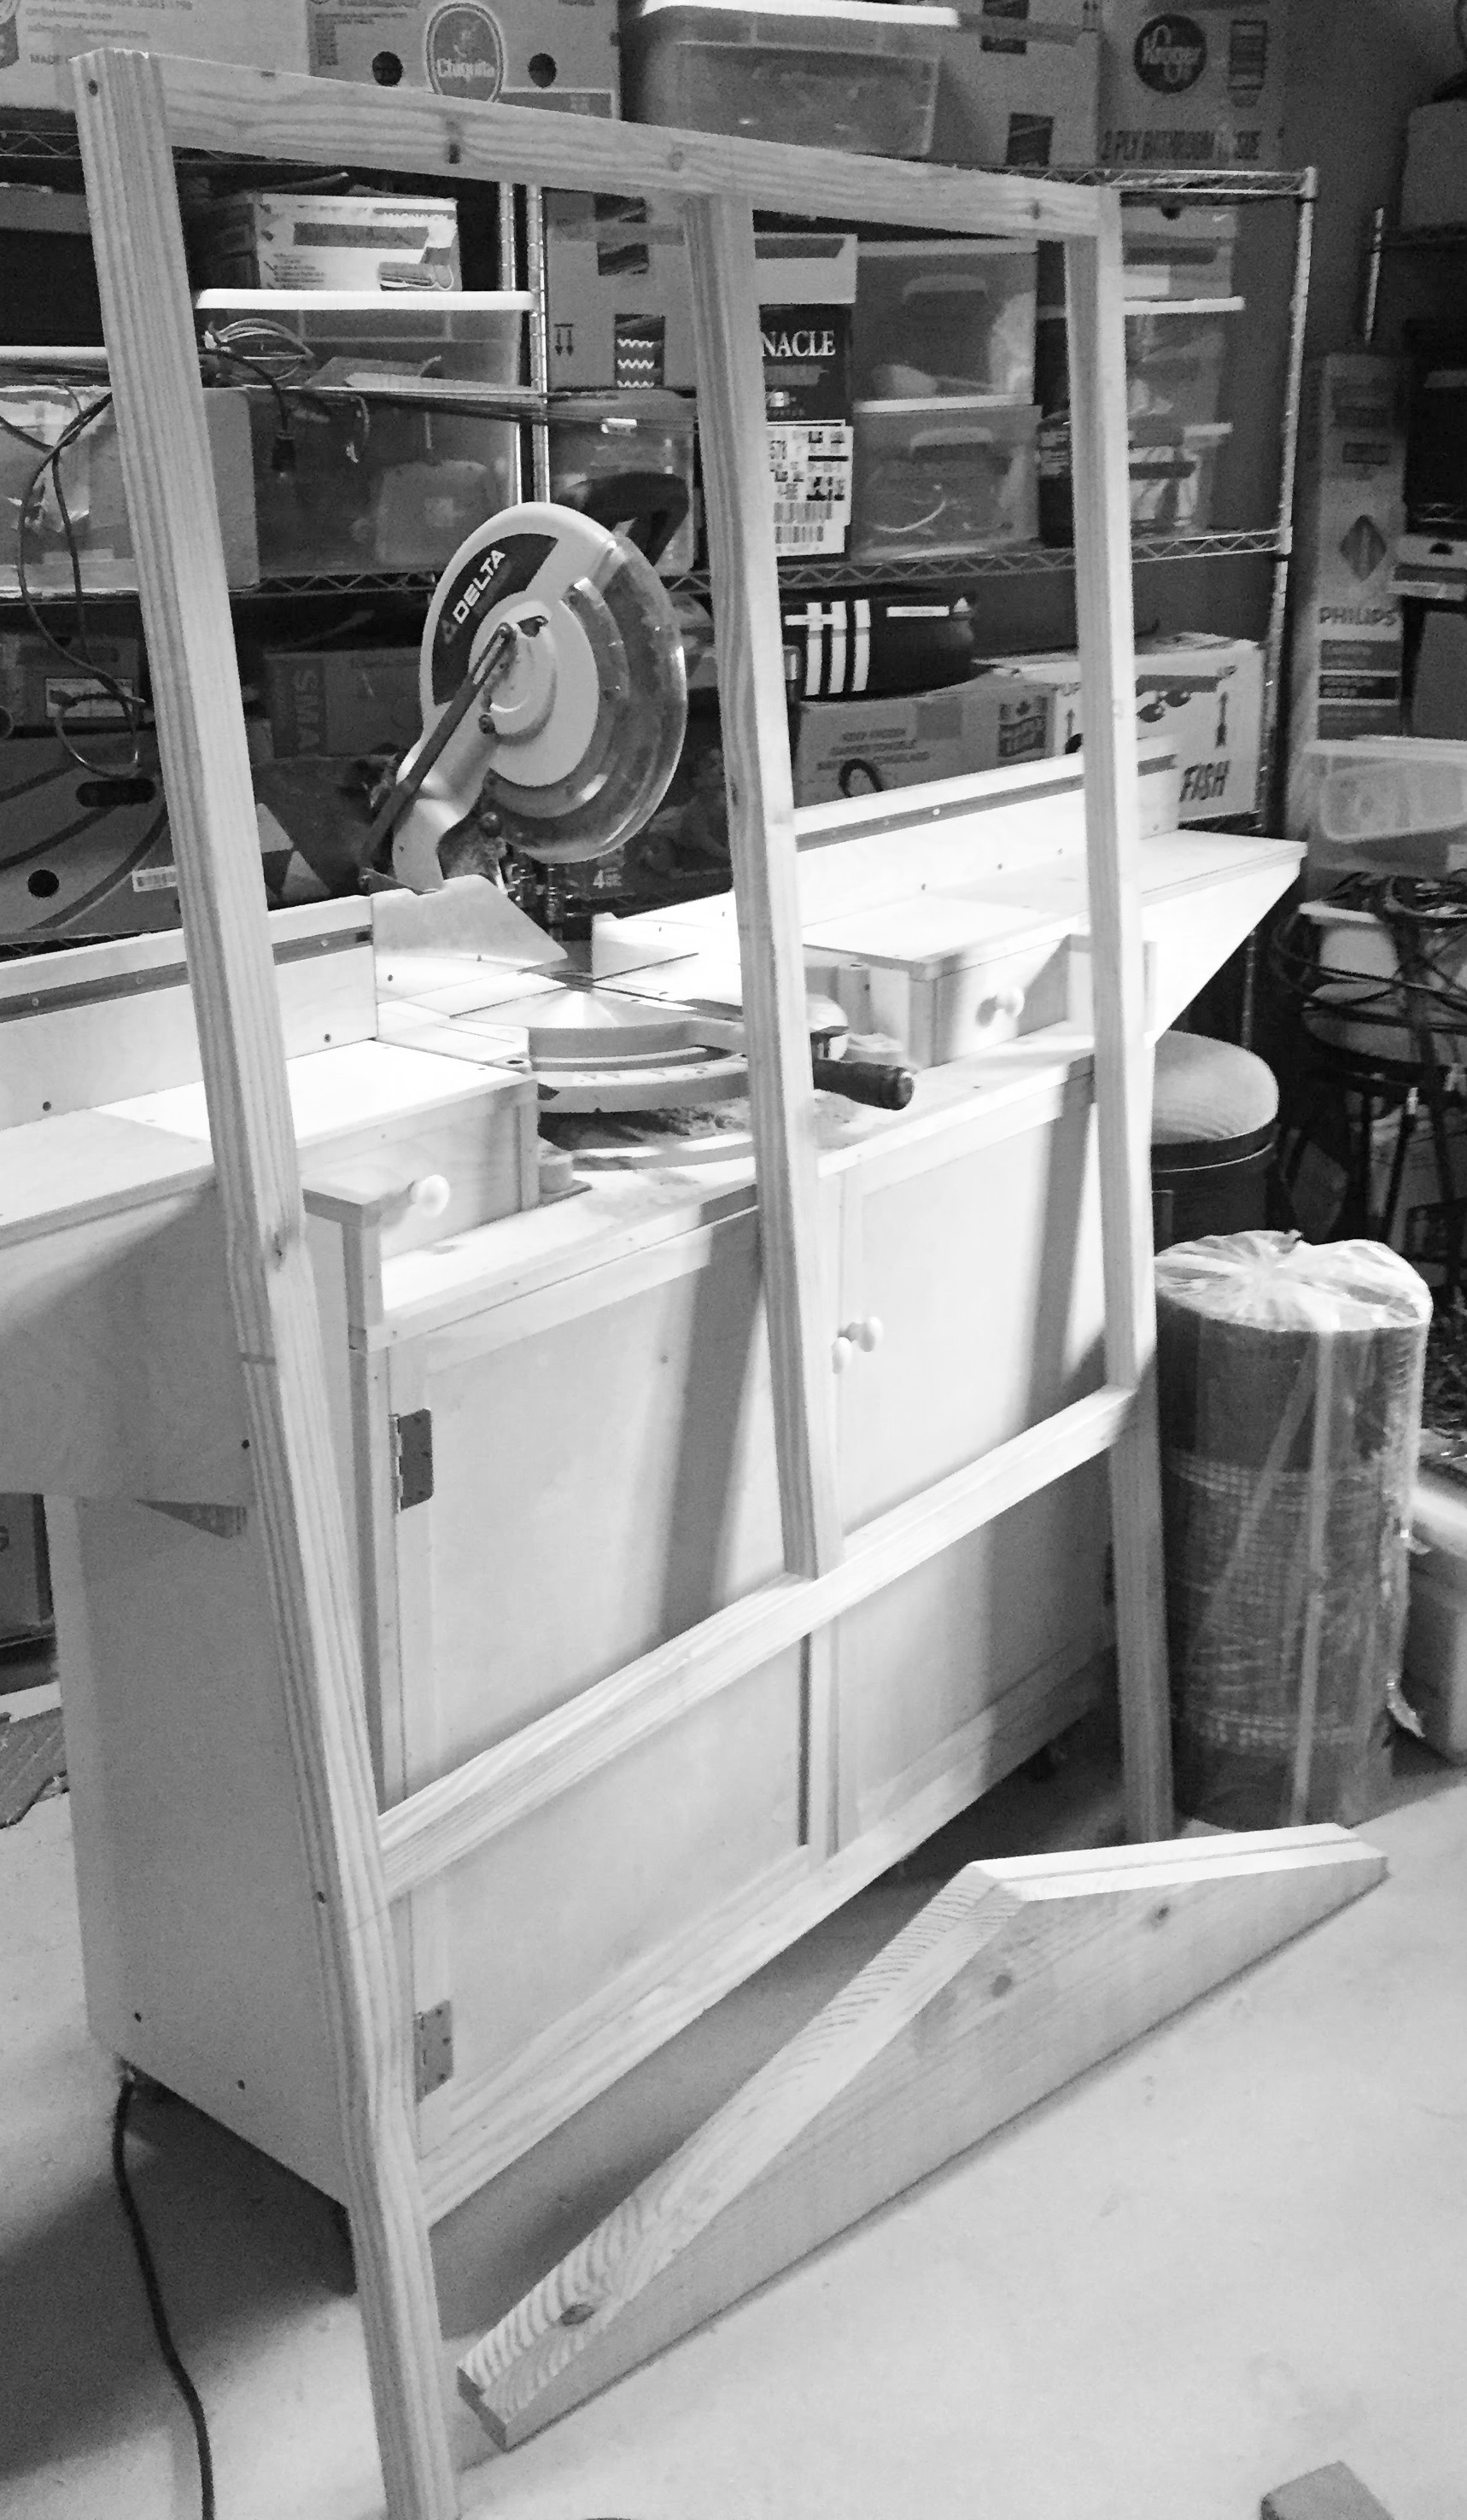 The back wall of the aviary leaning up against the chopsaw station. I was running out of room in the shop on this project.